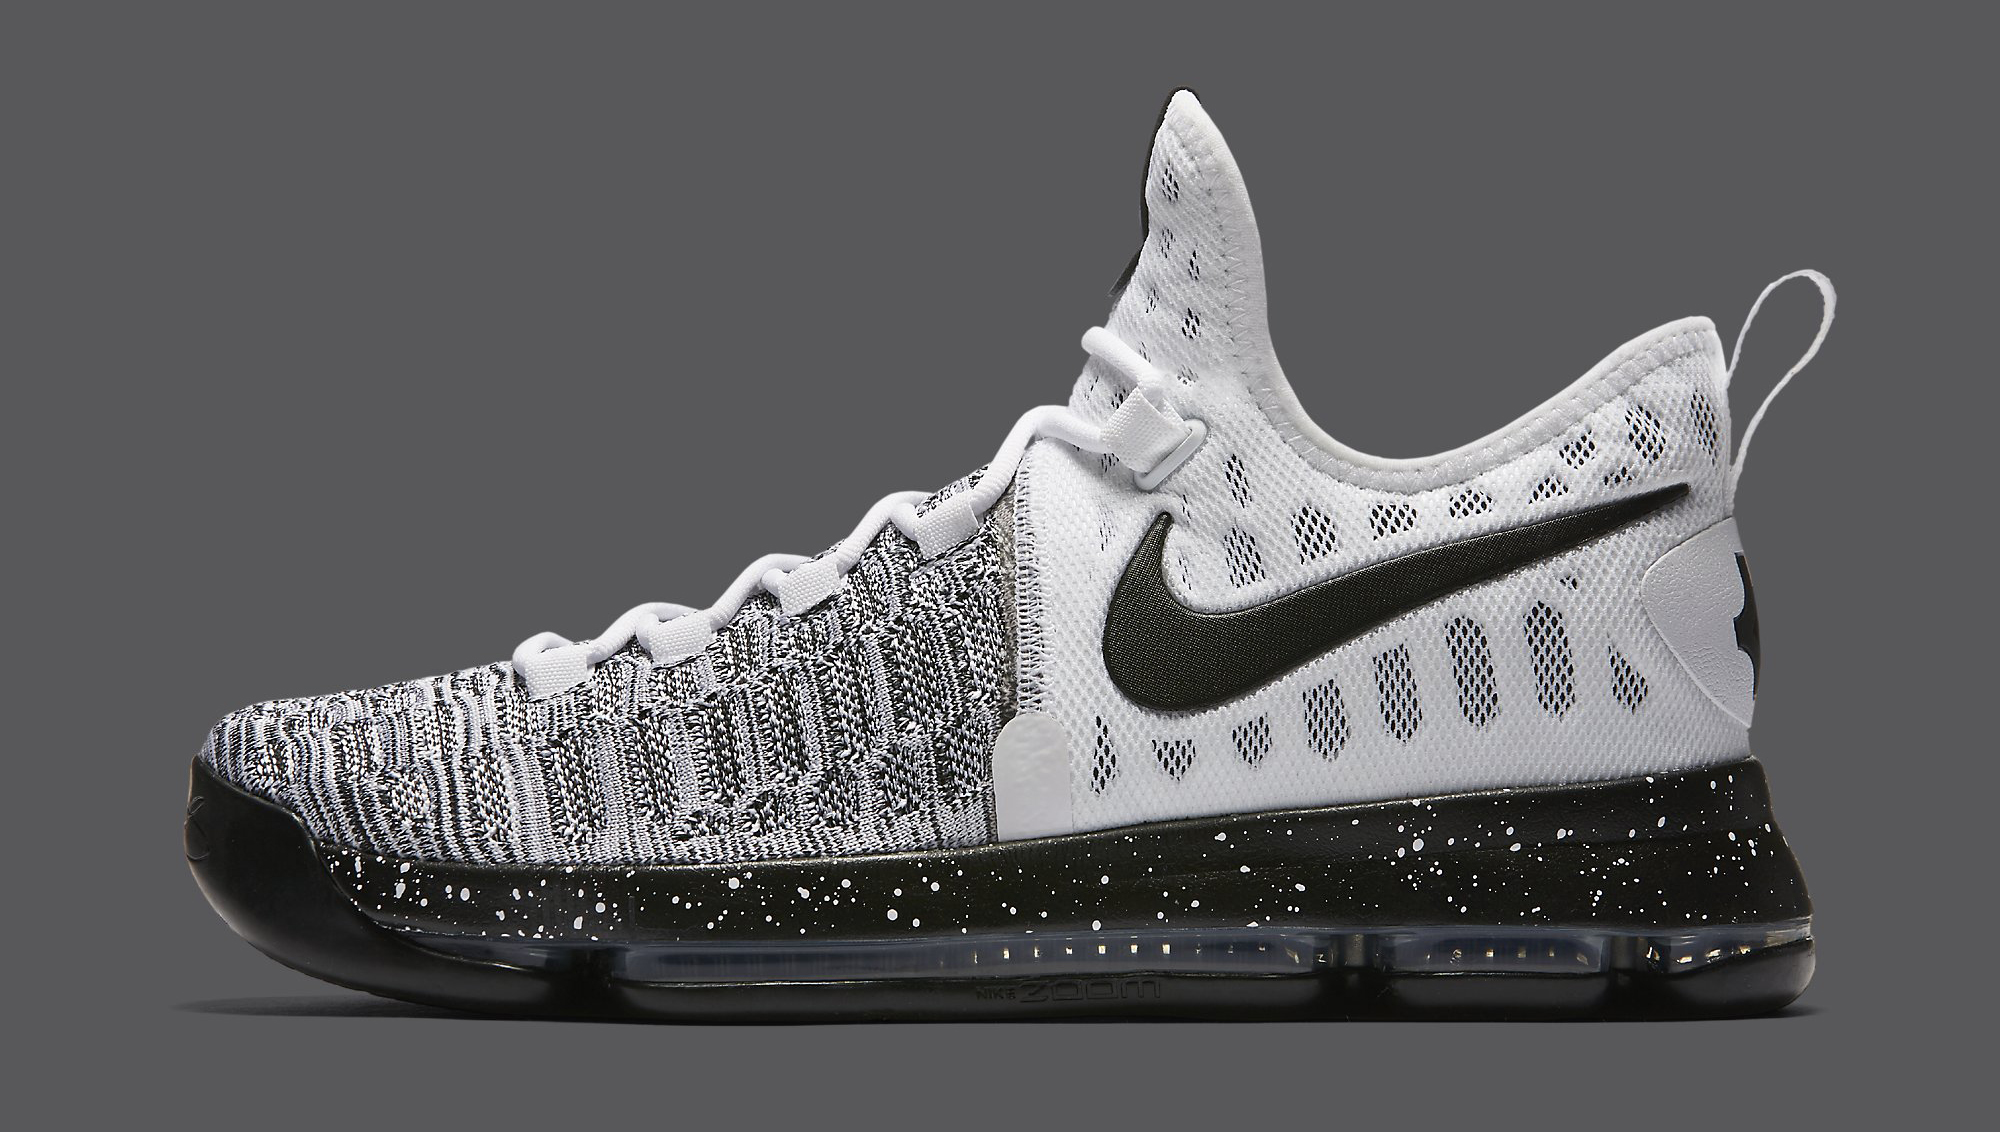 new styles 7a4cc 406c4 Nike KD 9 Black White Oreo 843392-100 | Sole Collector